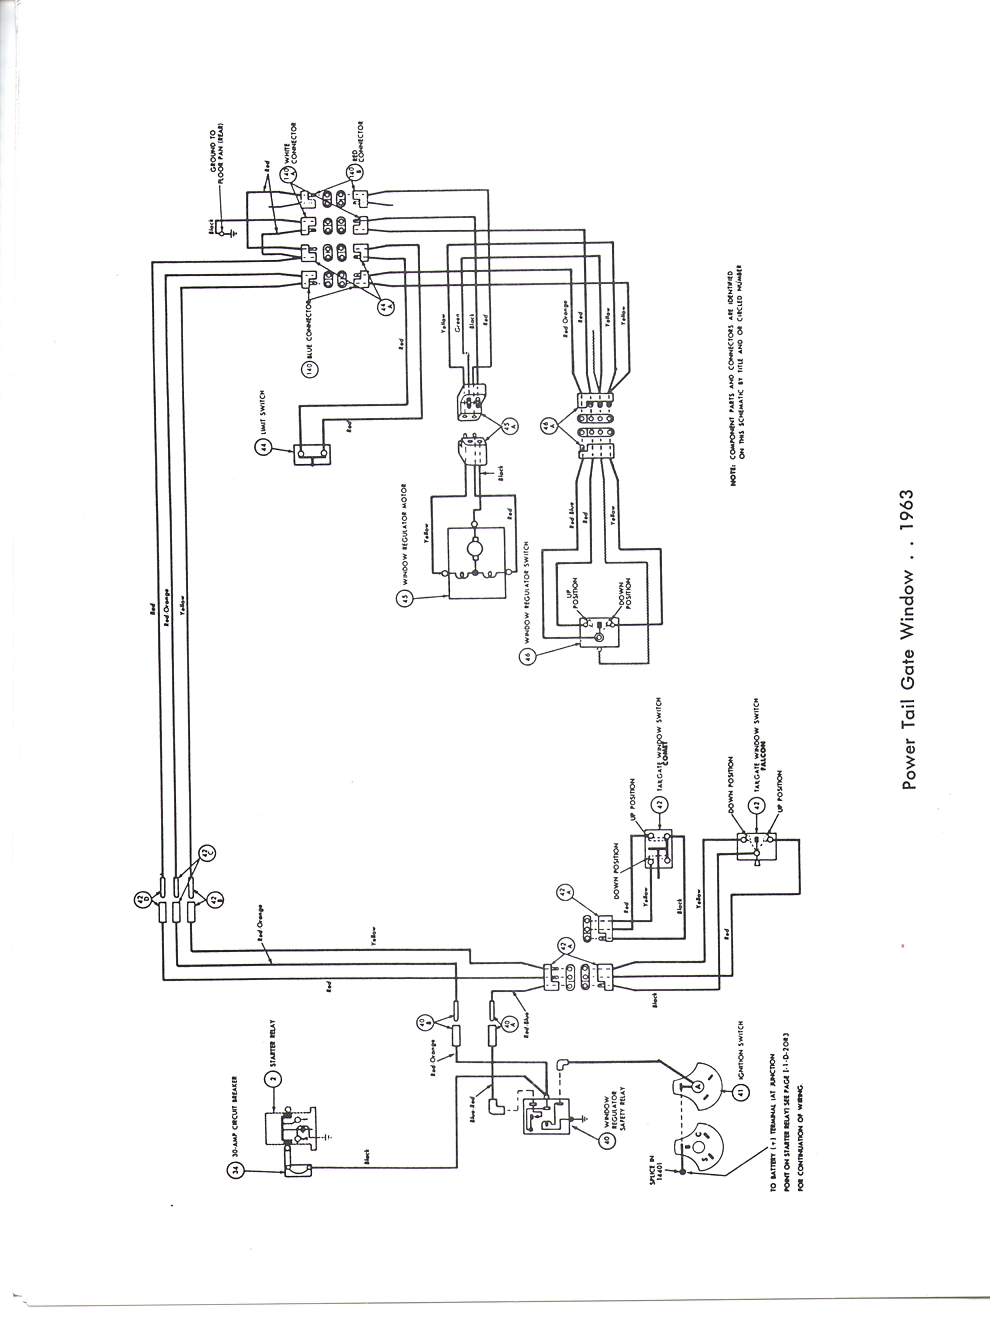 63 Ford Ranchero Wiring Diagrams how do you draw on the